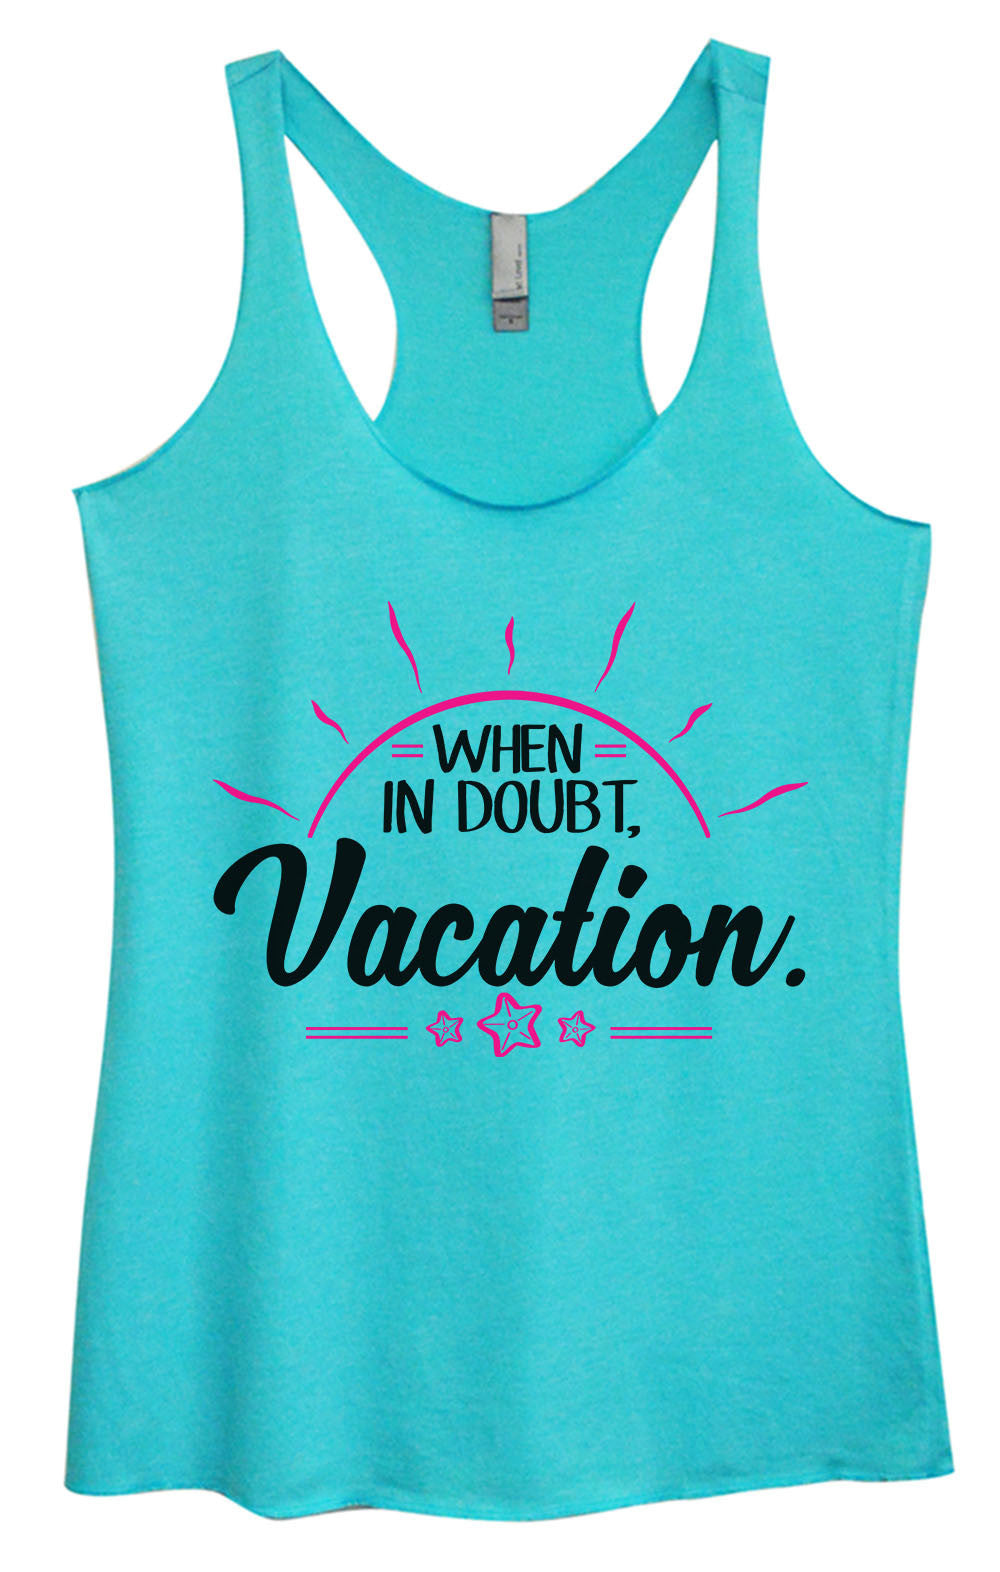 Womens Fashion Triblend Tank Top - When In Doubt. Vacation. - Tri-1390 - Funny Shirts Tank Tops Burnouts and Triblends  - 2